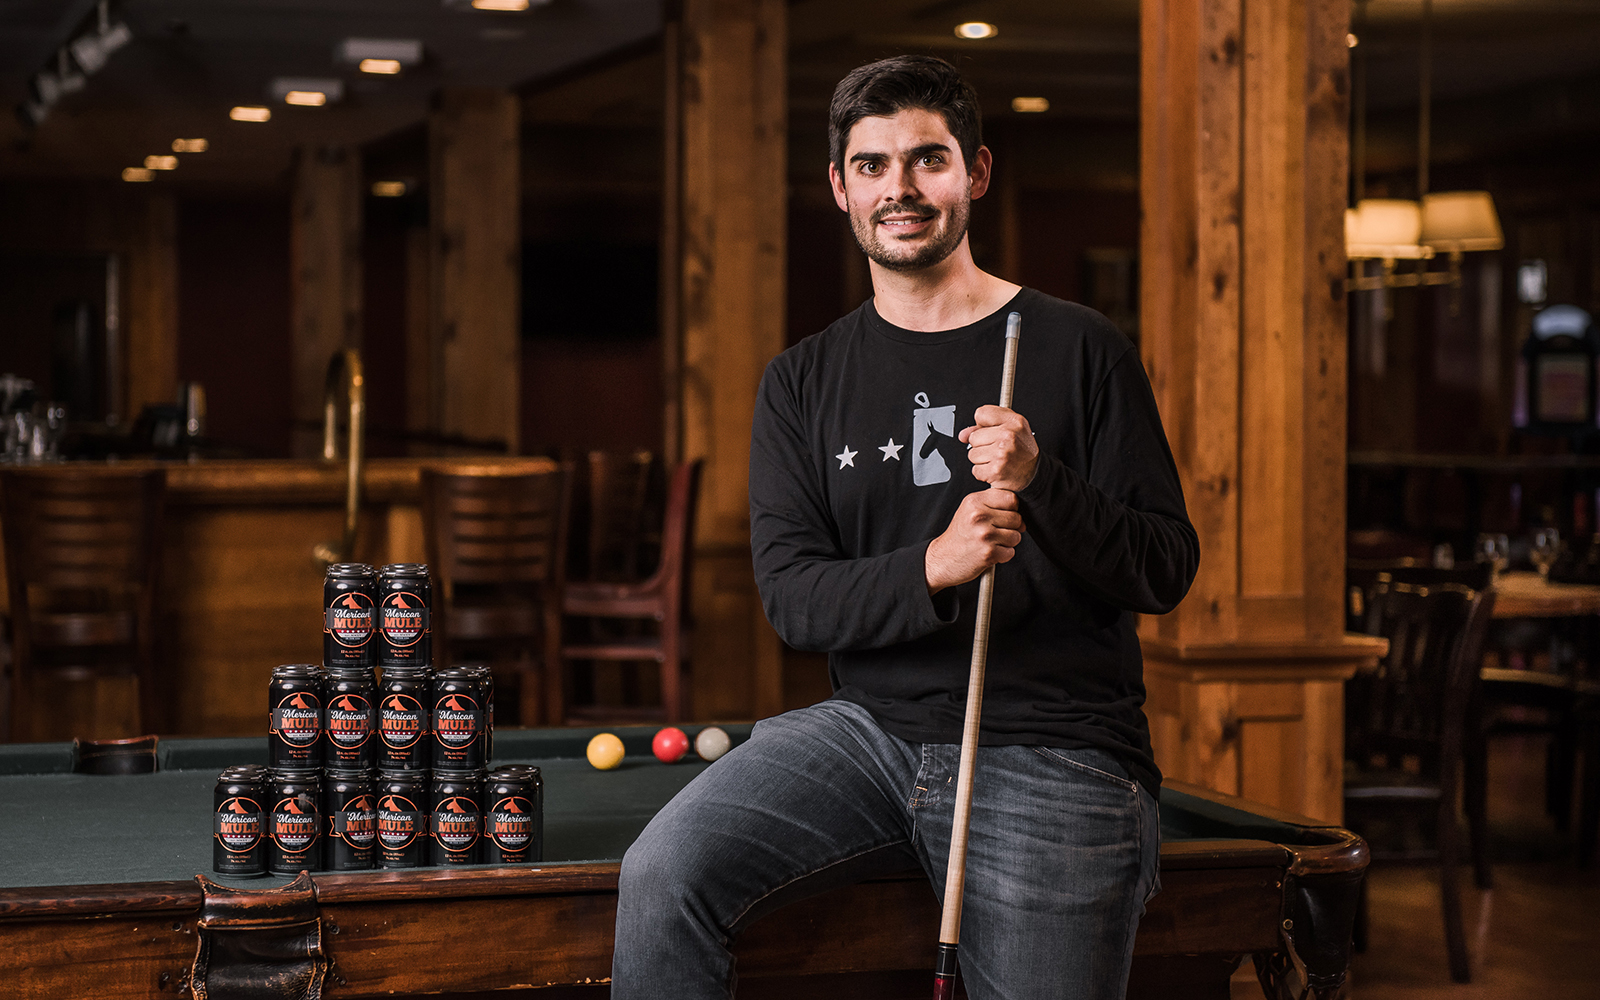 Dean Mahoney '09, pictured above, co-founded 'Merican Mule in 2015. He is spearheading East Coast distribution of his company's namesake, an alcoholic beverage inspired by the Moscow Mule. (Nathan Oldham/UConn School of Business)